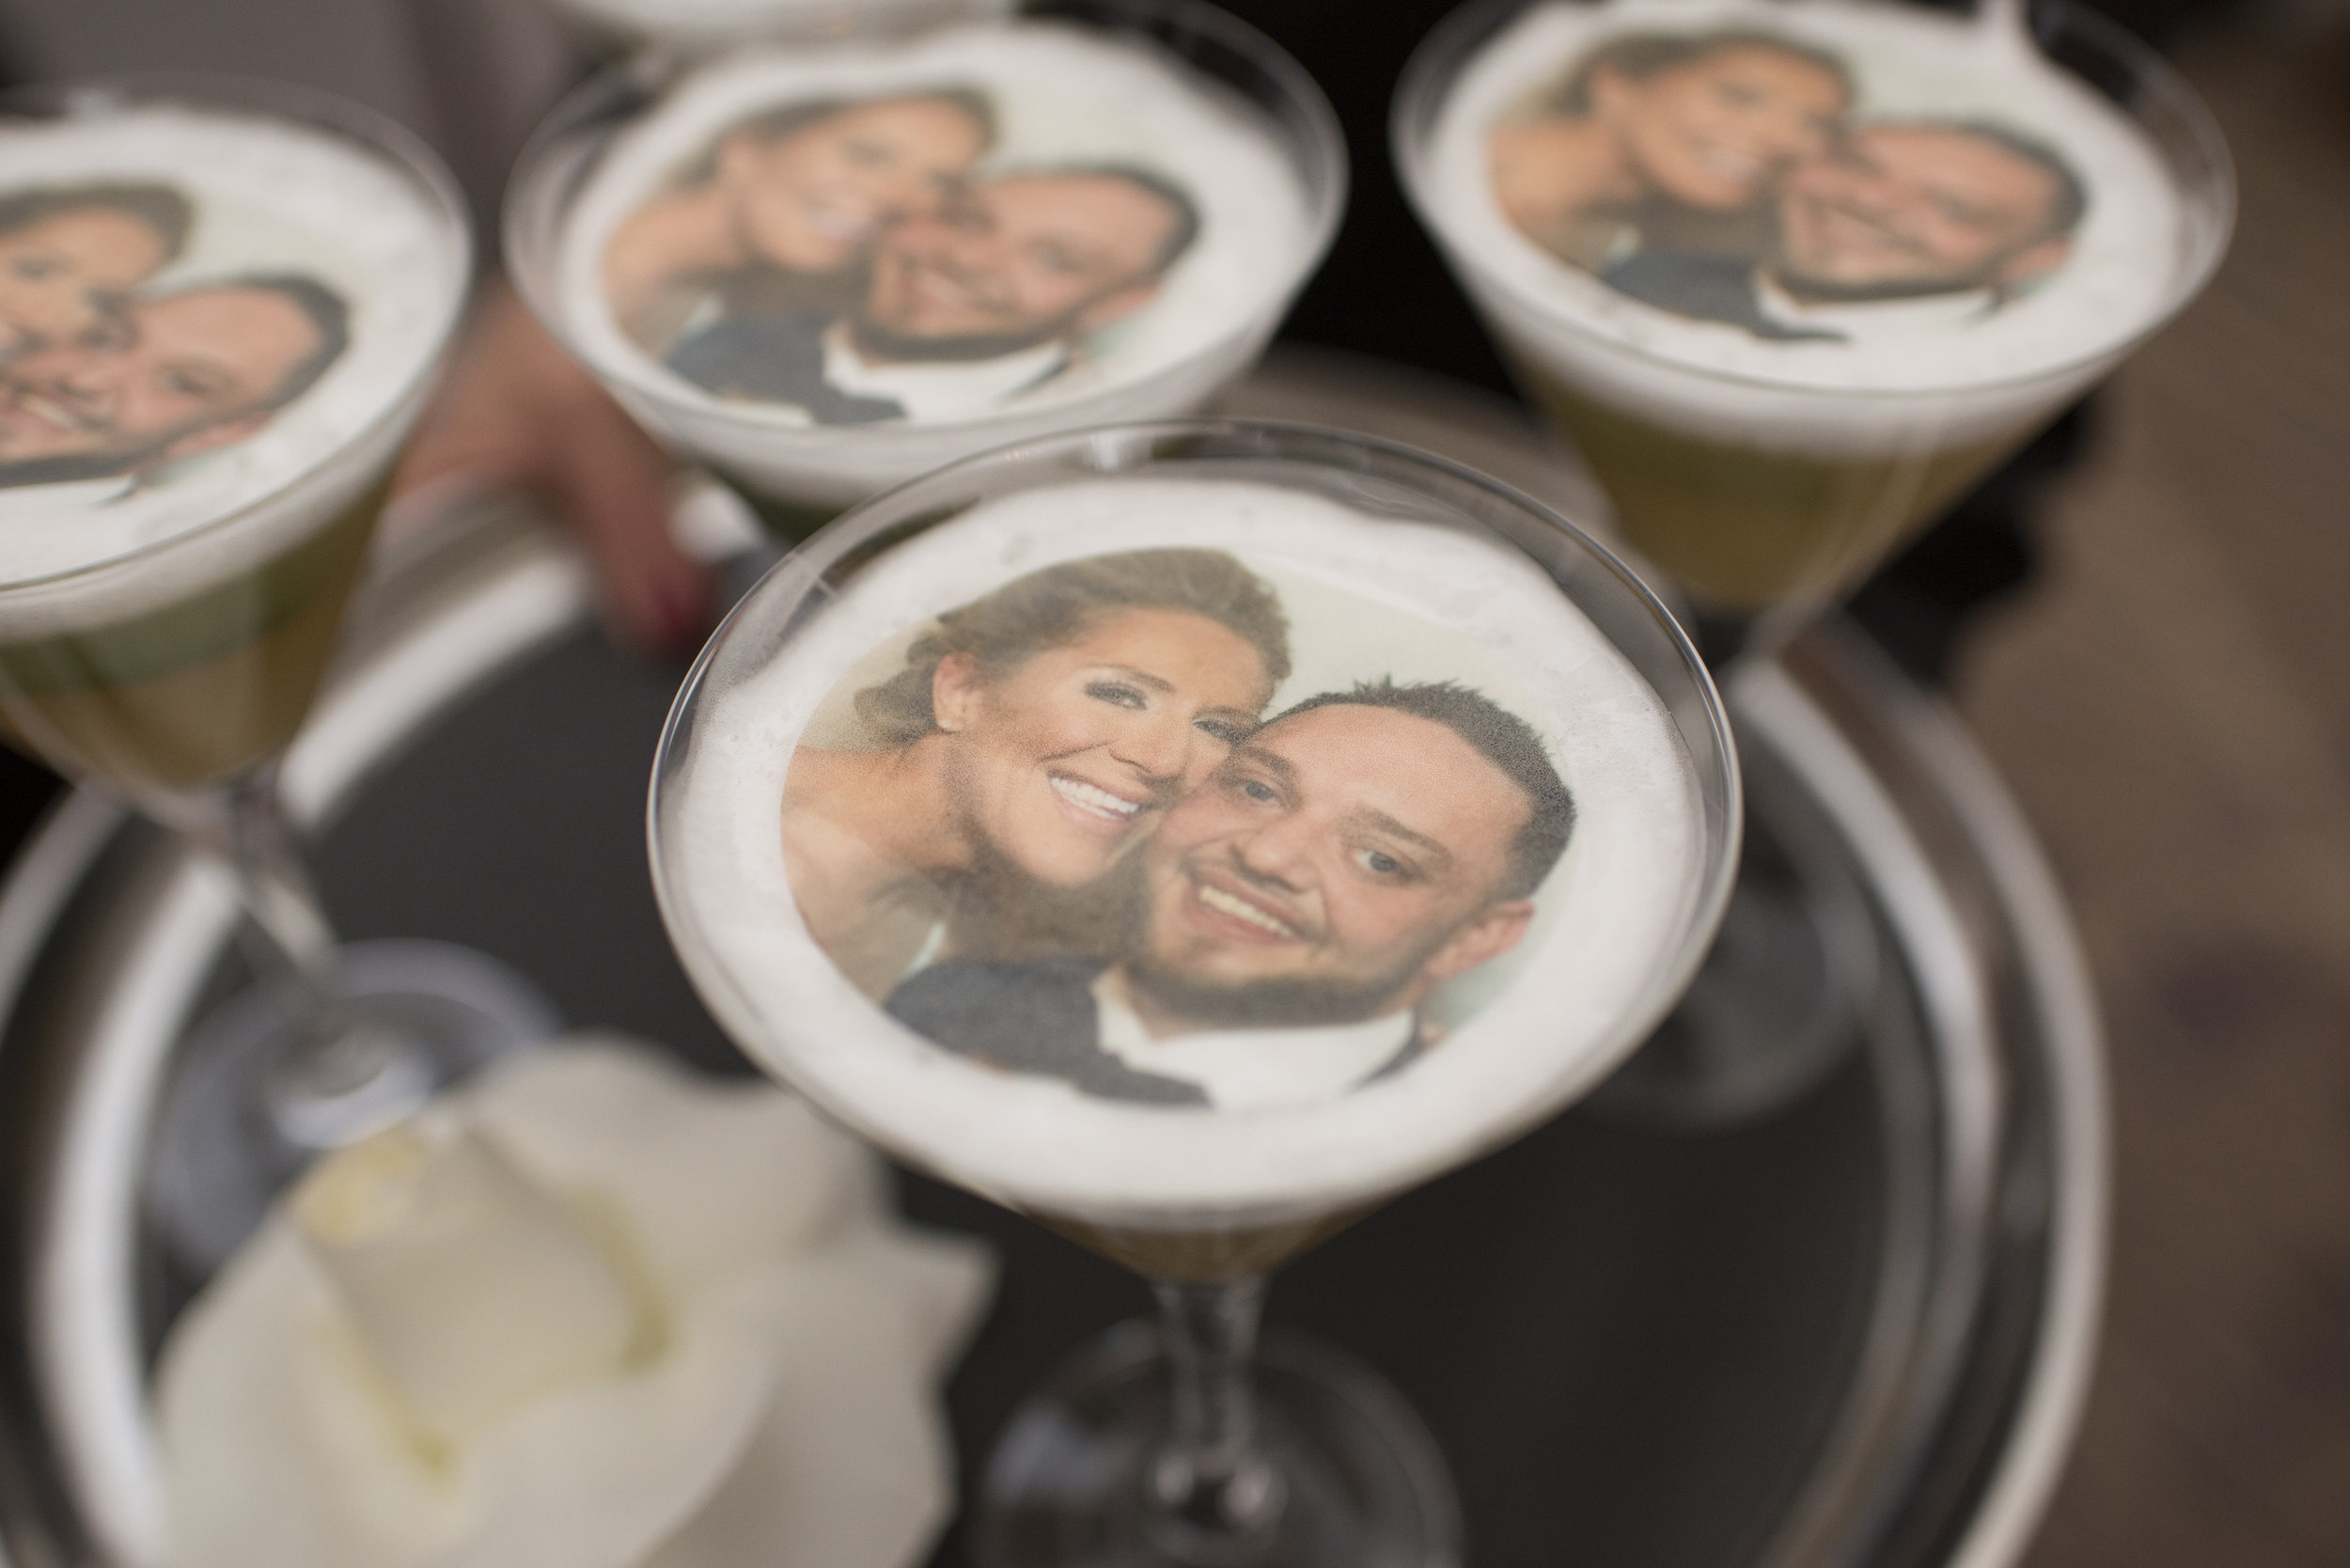 Drink Your Face Off. The SipMi Cocktail from The Grand Bevy. Drinks with the bride and groom's face printed on them. WEDDING PLANNING & EVENT DESIGN • Andrea Eppolito Events ,PHOTOGRAPHY • AltF Photography ,FLORAL AND DECOR DESIGN & PRODUCTION • Destinations by Design , CATERING • Mandarin Oriental Las Vegas , COCKTAILS •  The Grand Bevy , WEDDING GOWN •  Galia Lahav ,SHOES •  Jimmy Choo , ACRYLIC MENUS & SEATING CHART•  She Paperie